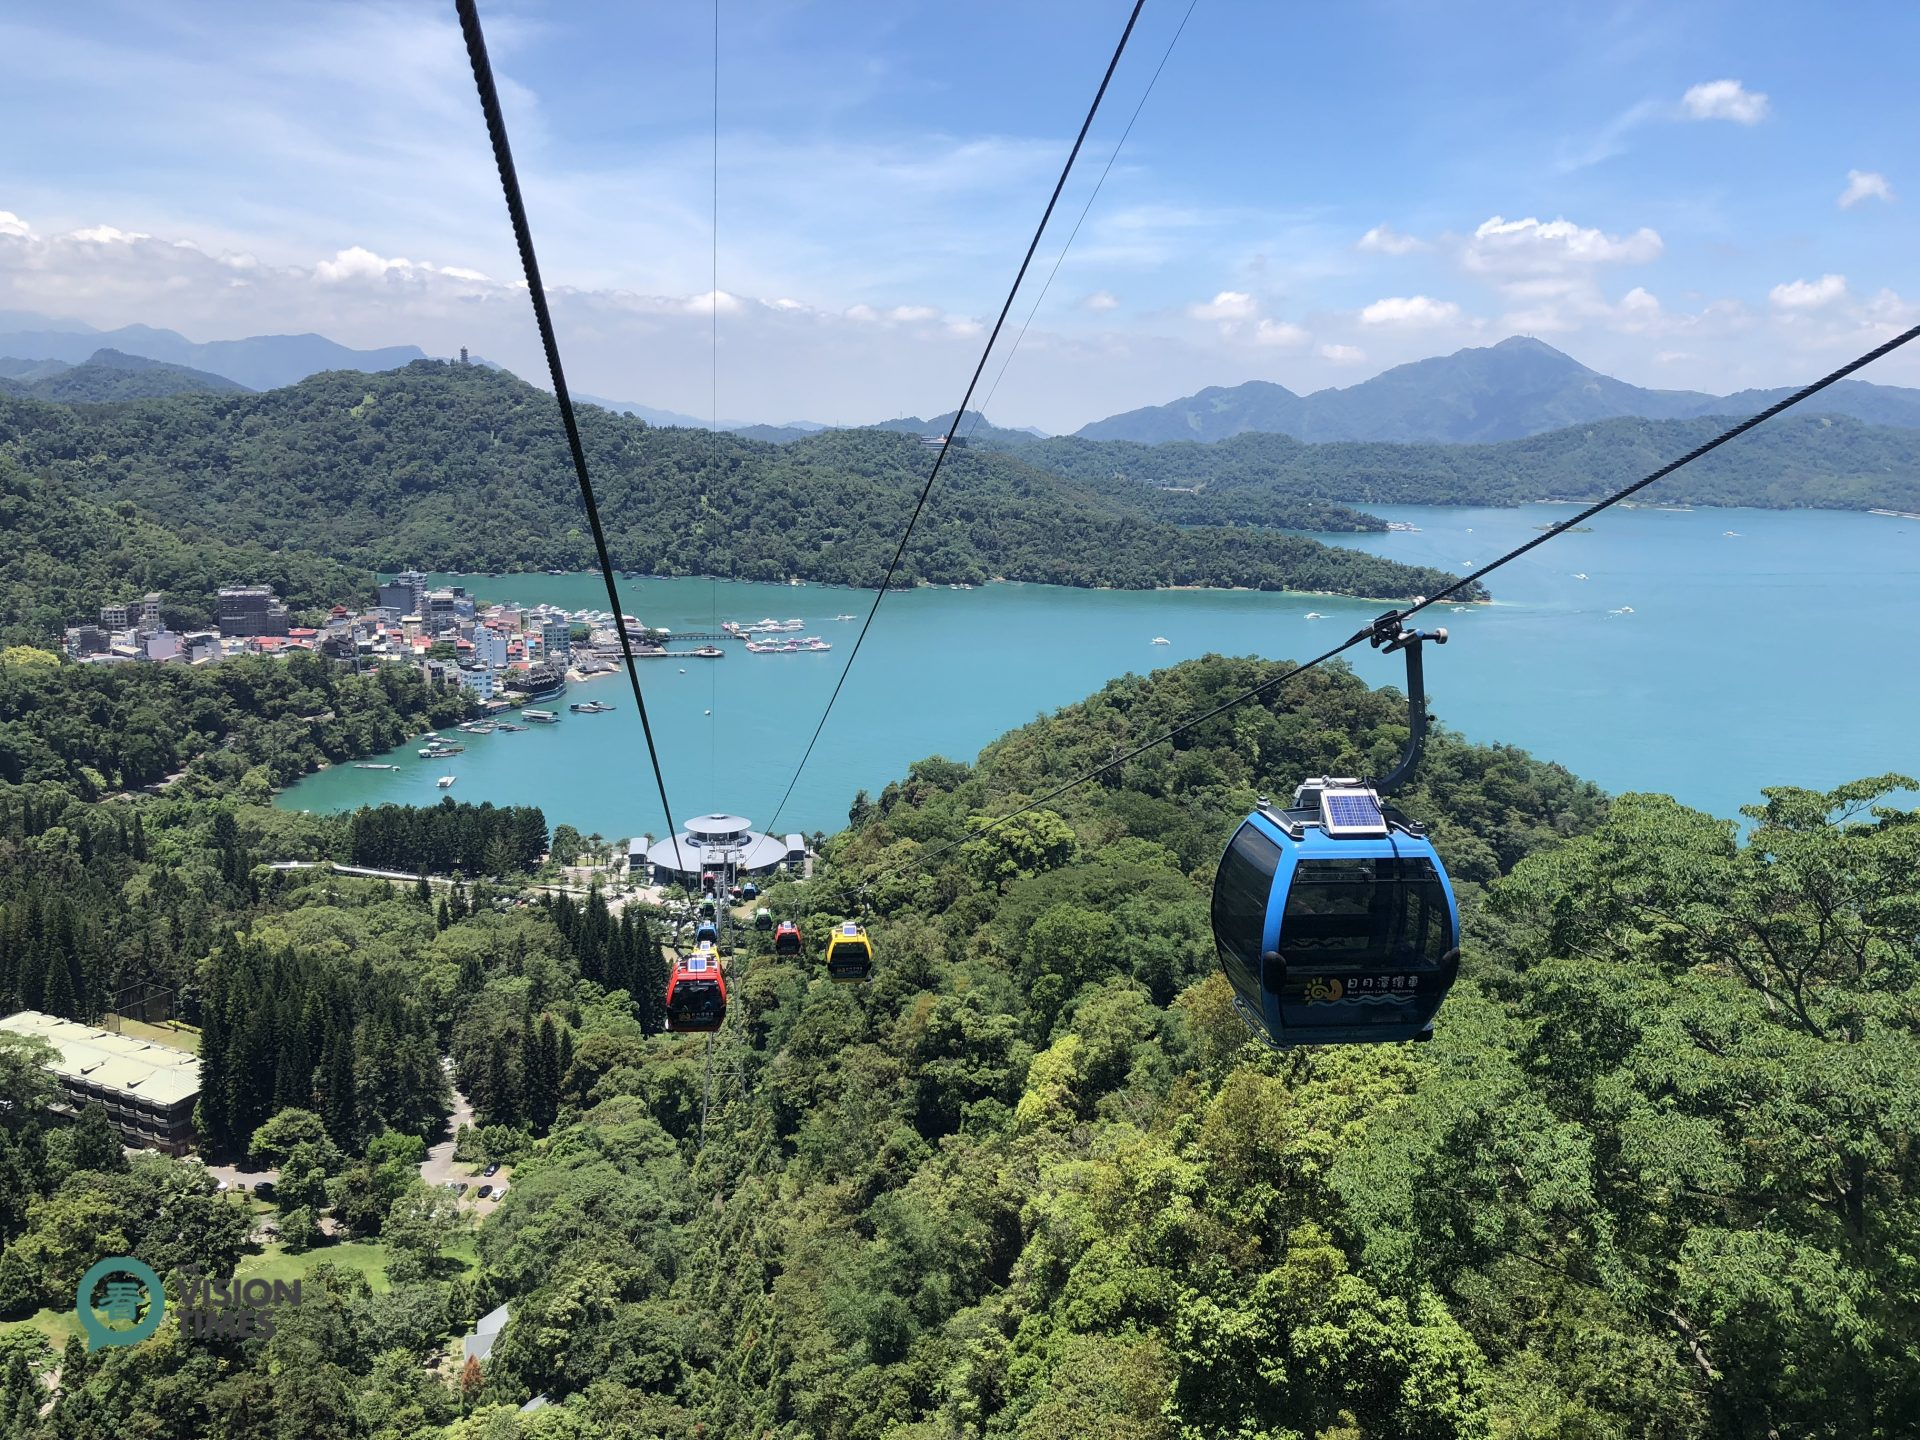 Visitors can take a cable car to overlook the beautiful scenery of Sun Moon Lake and the mountains around. (Image: Julia Fu / Vision Times)